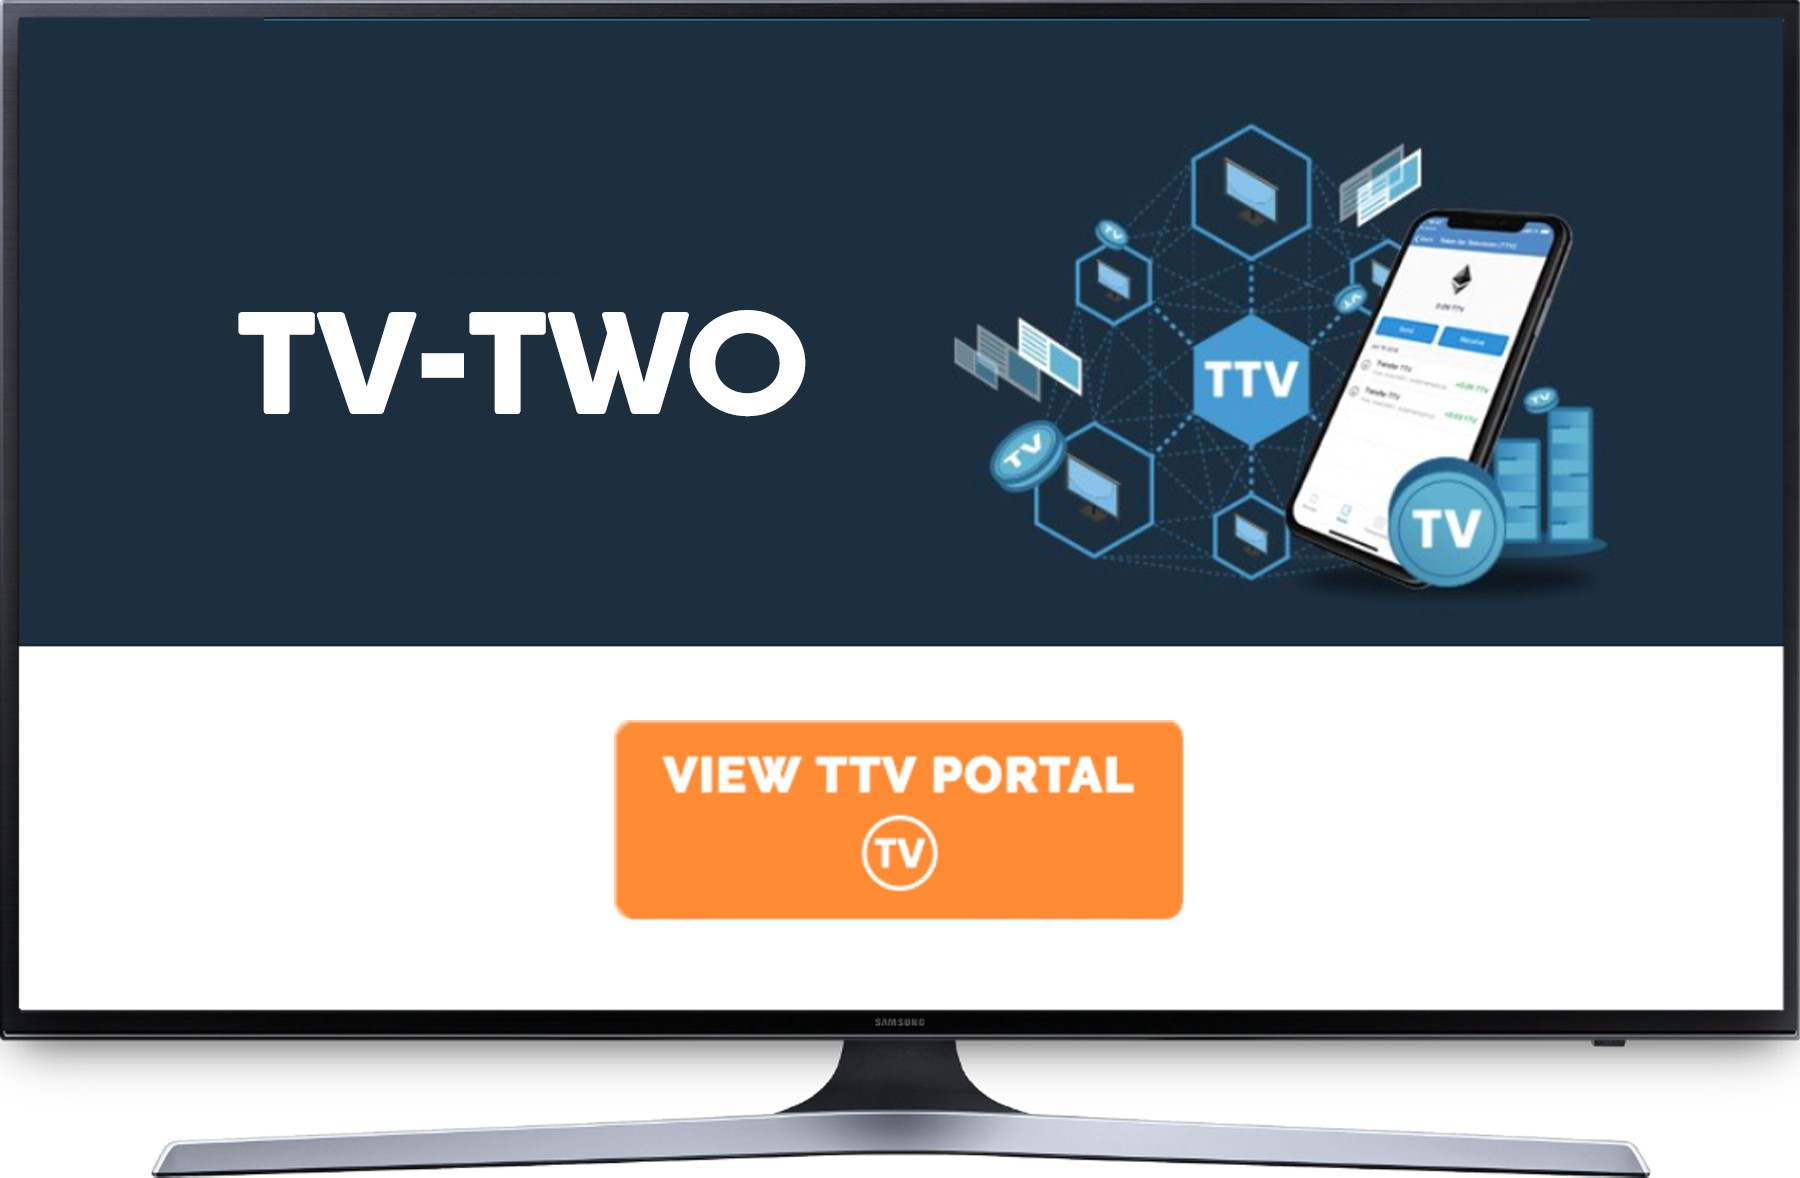 Storing your TV-TWO Tokens after the Unlock - tvtwocom - Medium